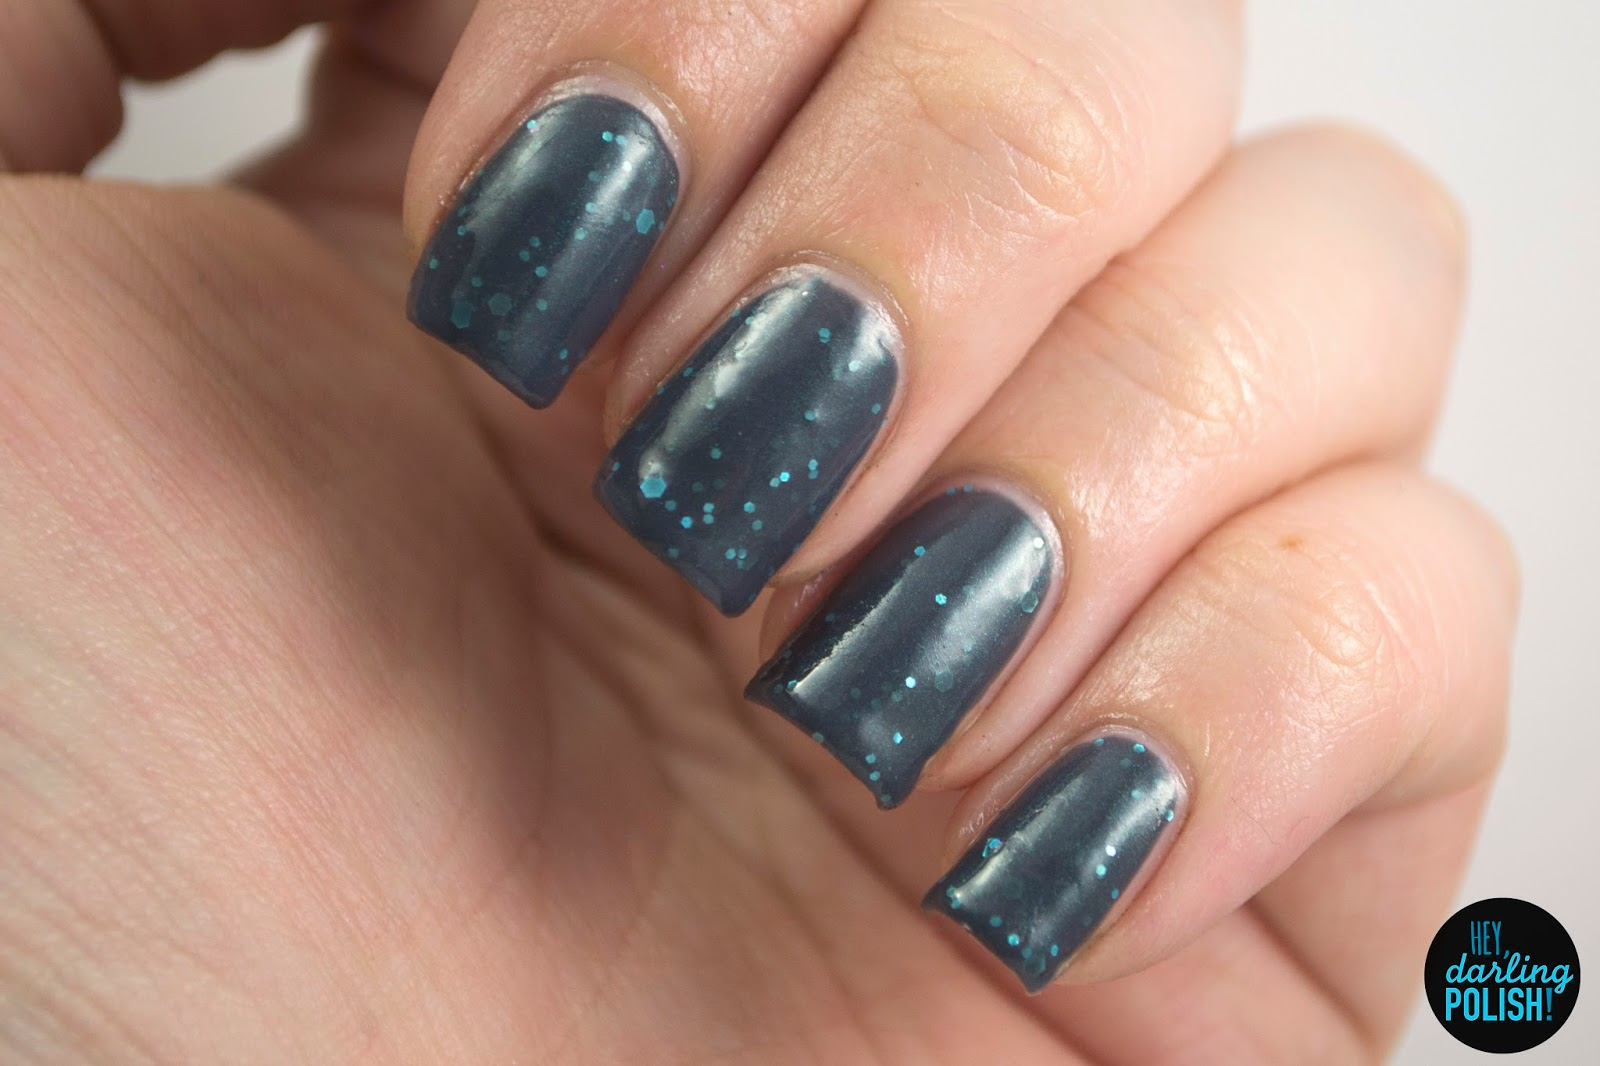 misty mountains, grey, teal, glitter, a study in polish, hey darling polish, nails, nail polish, indie, indie nail polish, indie polish, swatch,